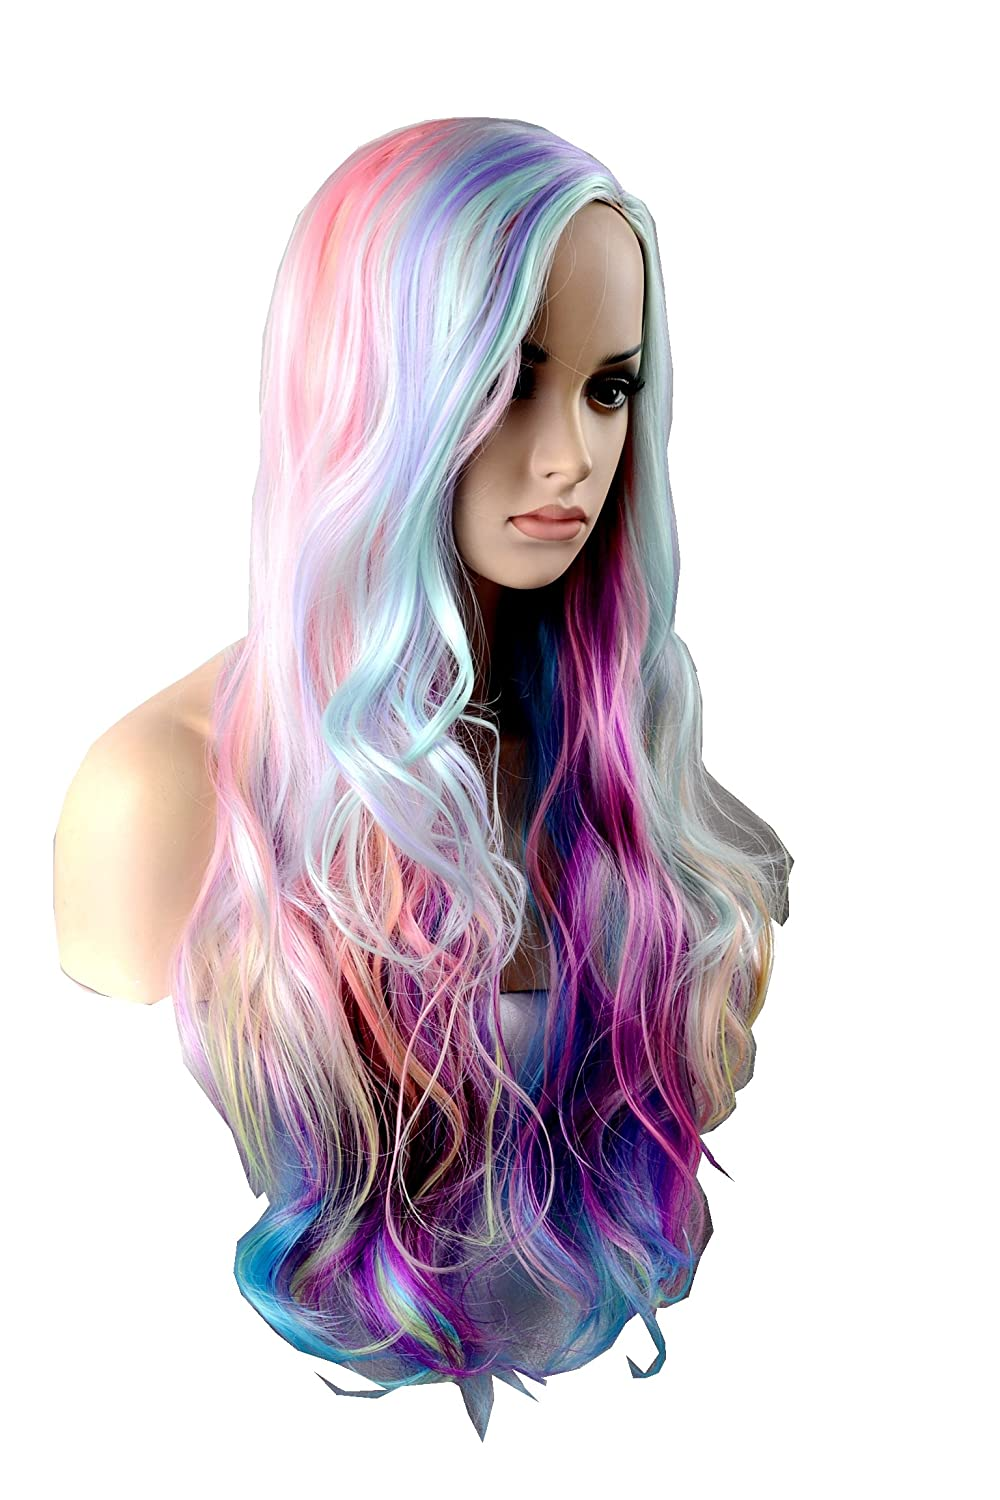 Wigbuy Cosplay 29.5 inches Colorful Hair wigs Ideas Multi color Synthetic Heat Resistant Fiber Natural Loose Long Wigs for Women (C)